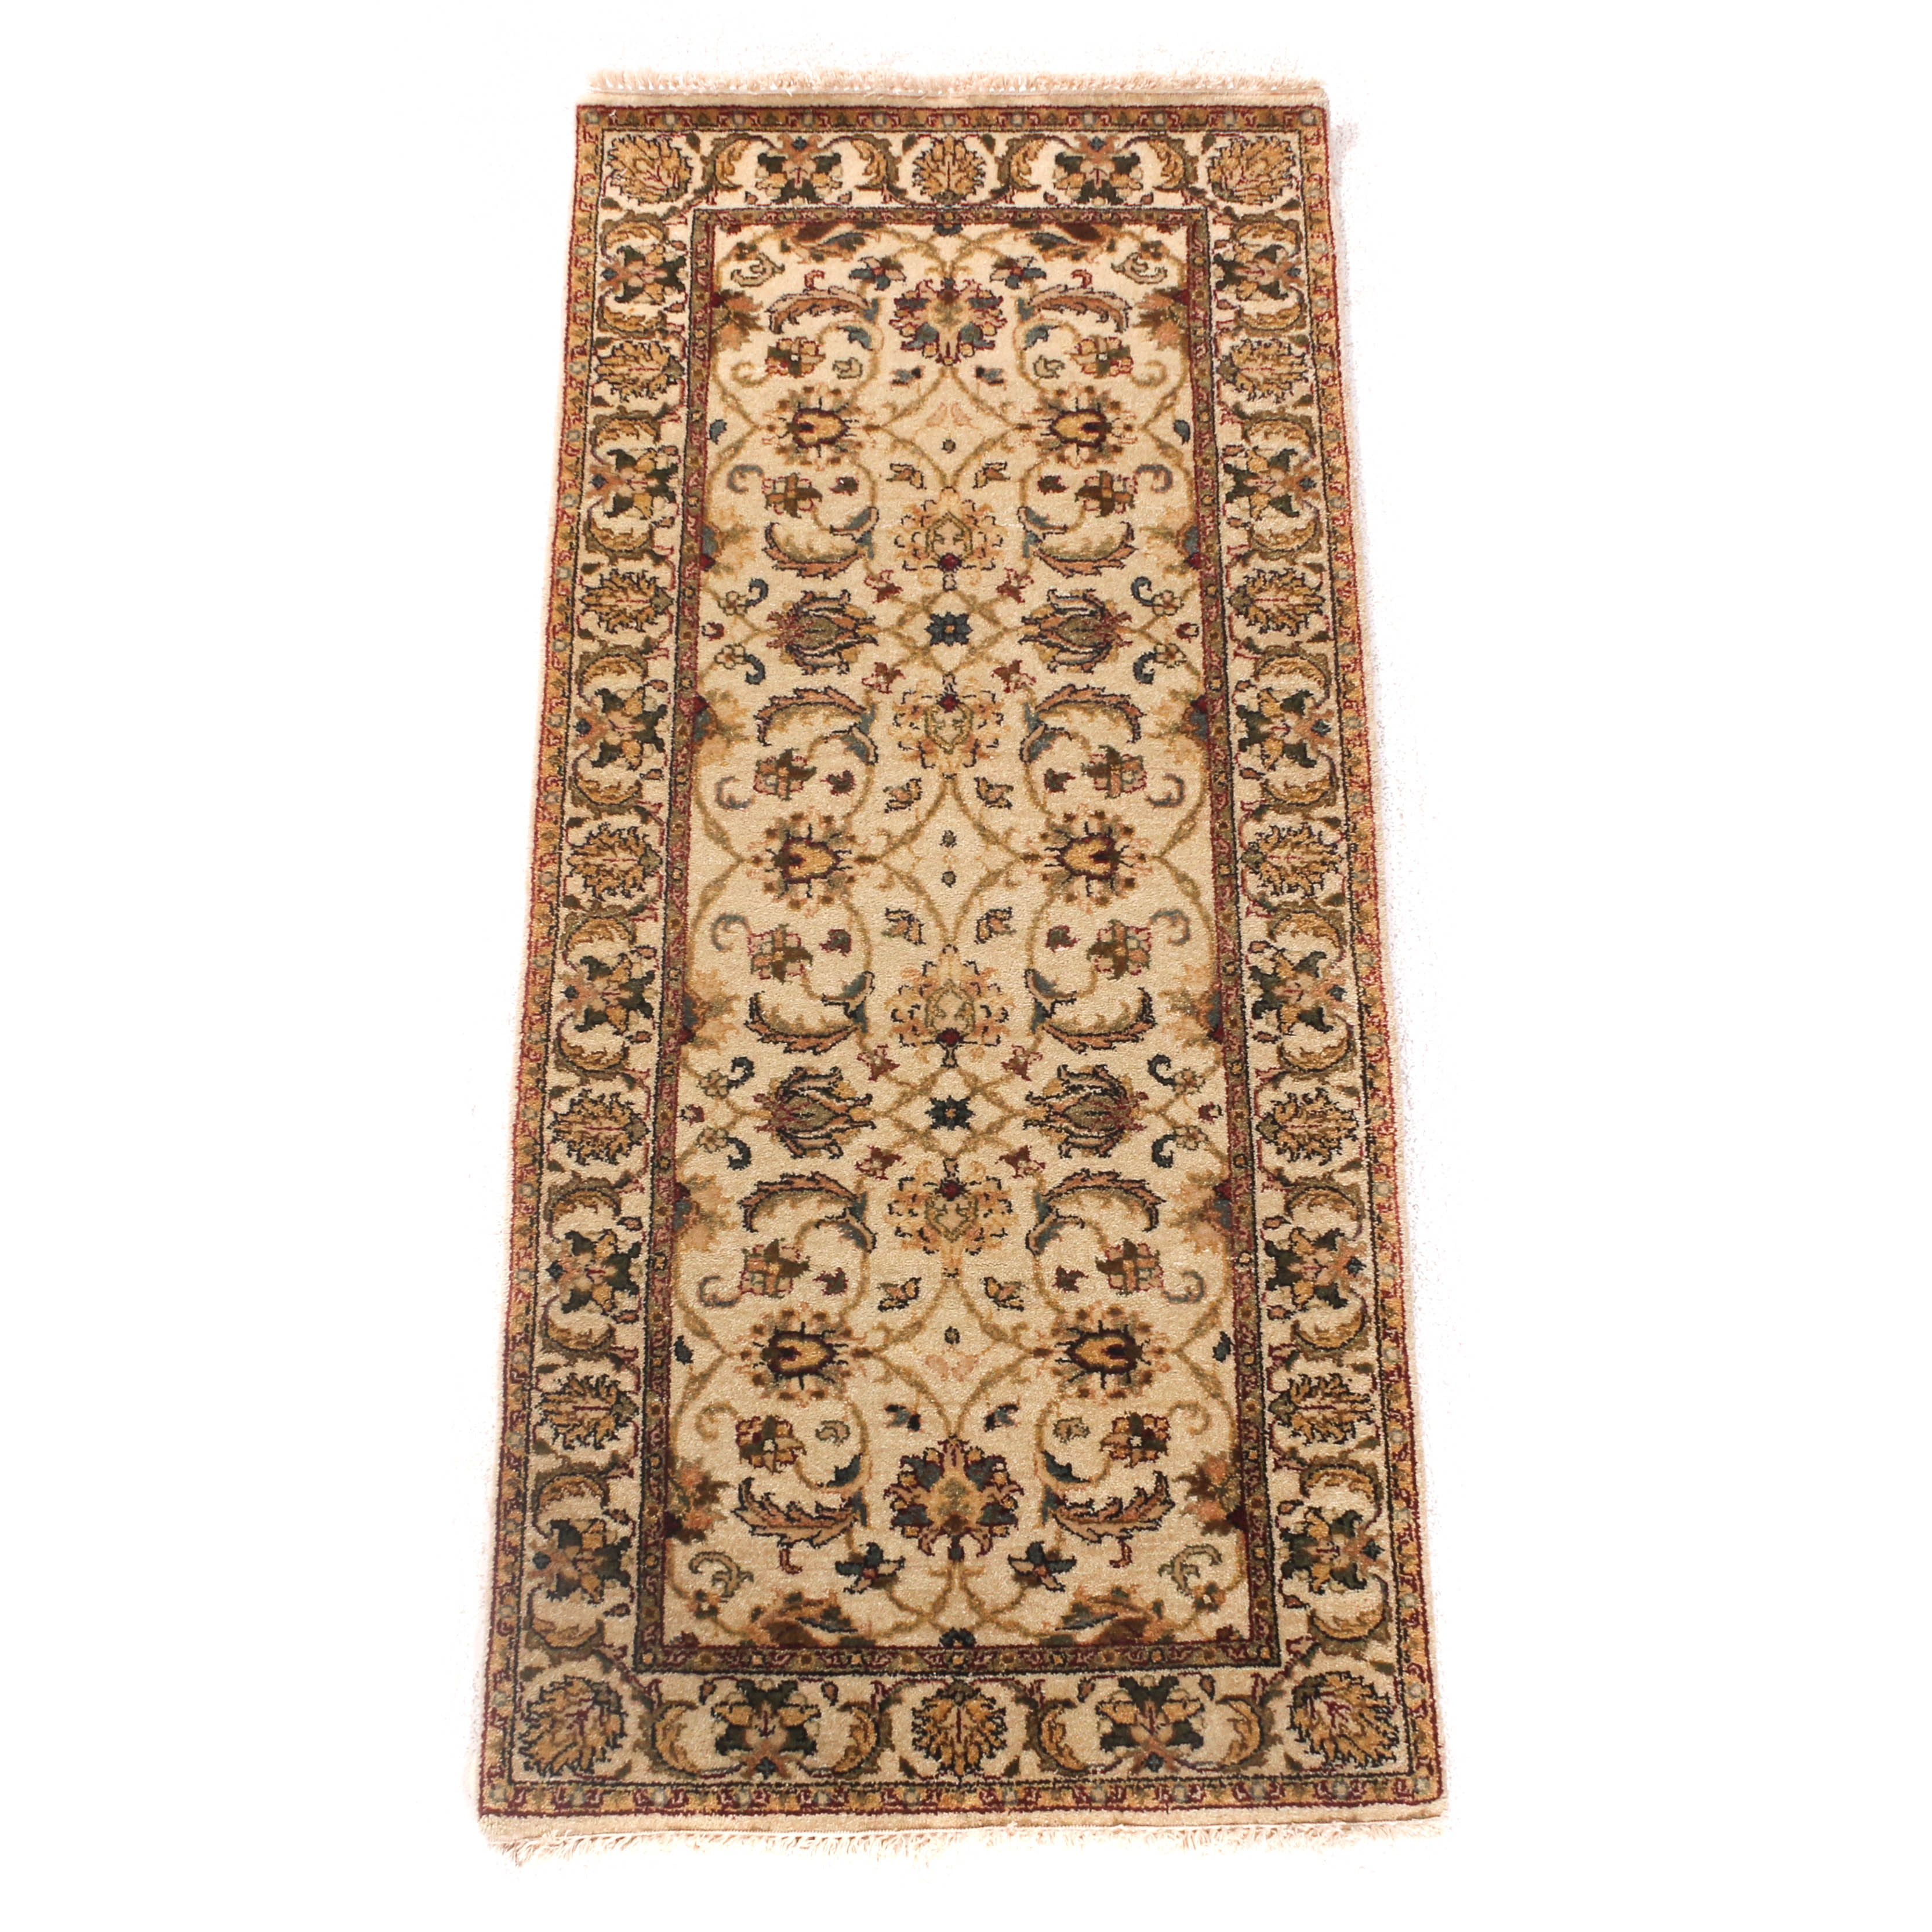 Hand-Knotted Indo-Persian Wool Long Rug